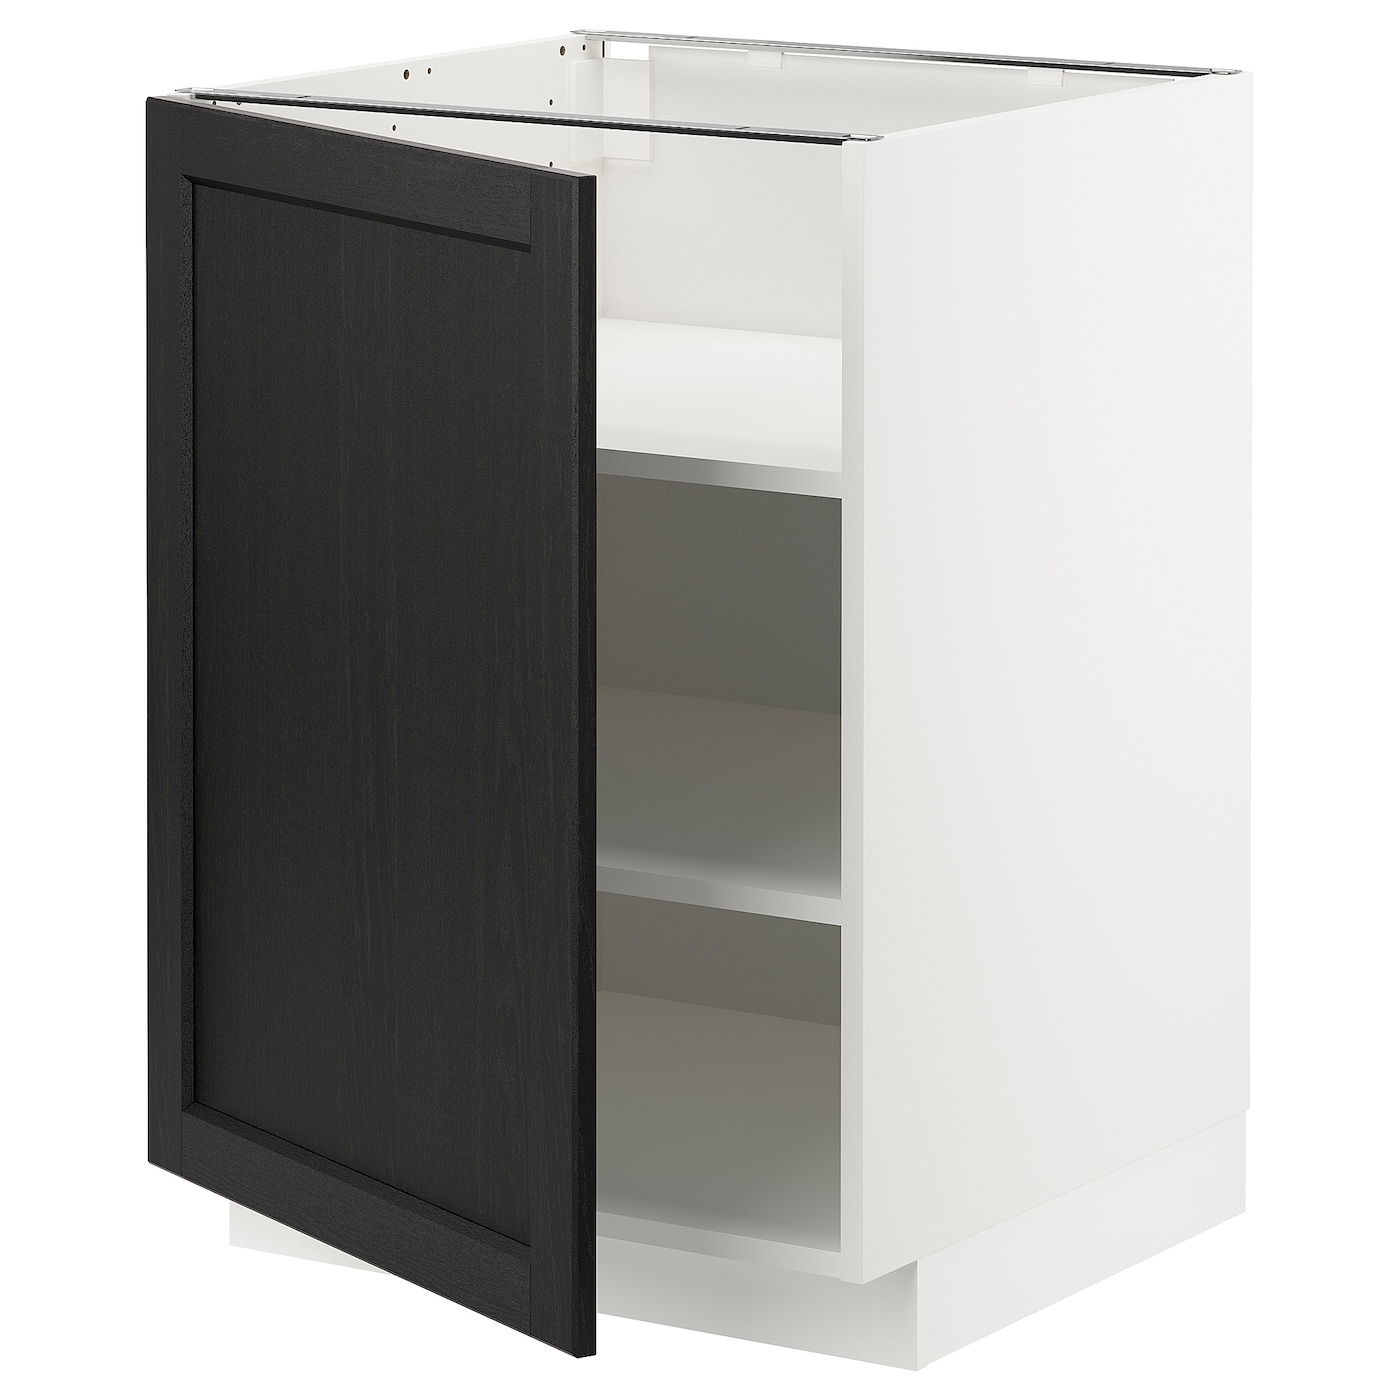 Metod Base Cabinet With Shelves White Lerhyttan Black Stained 60 X